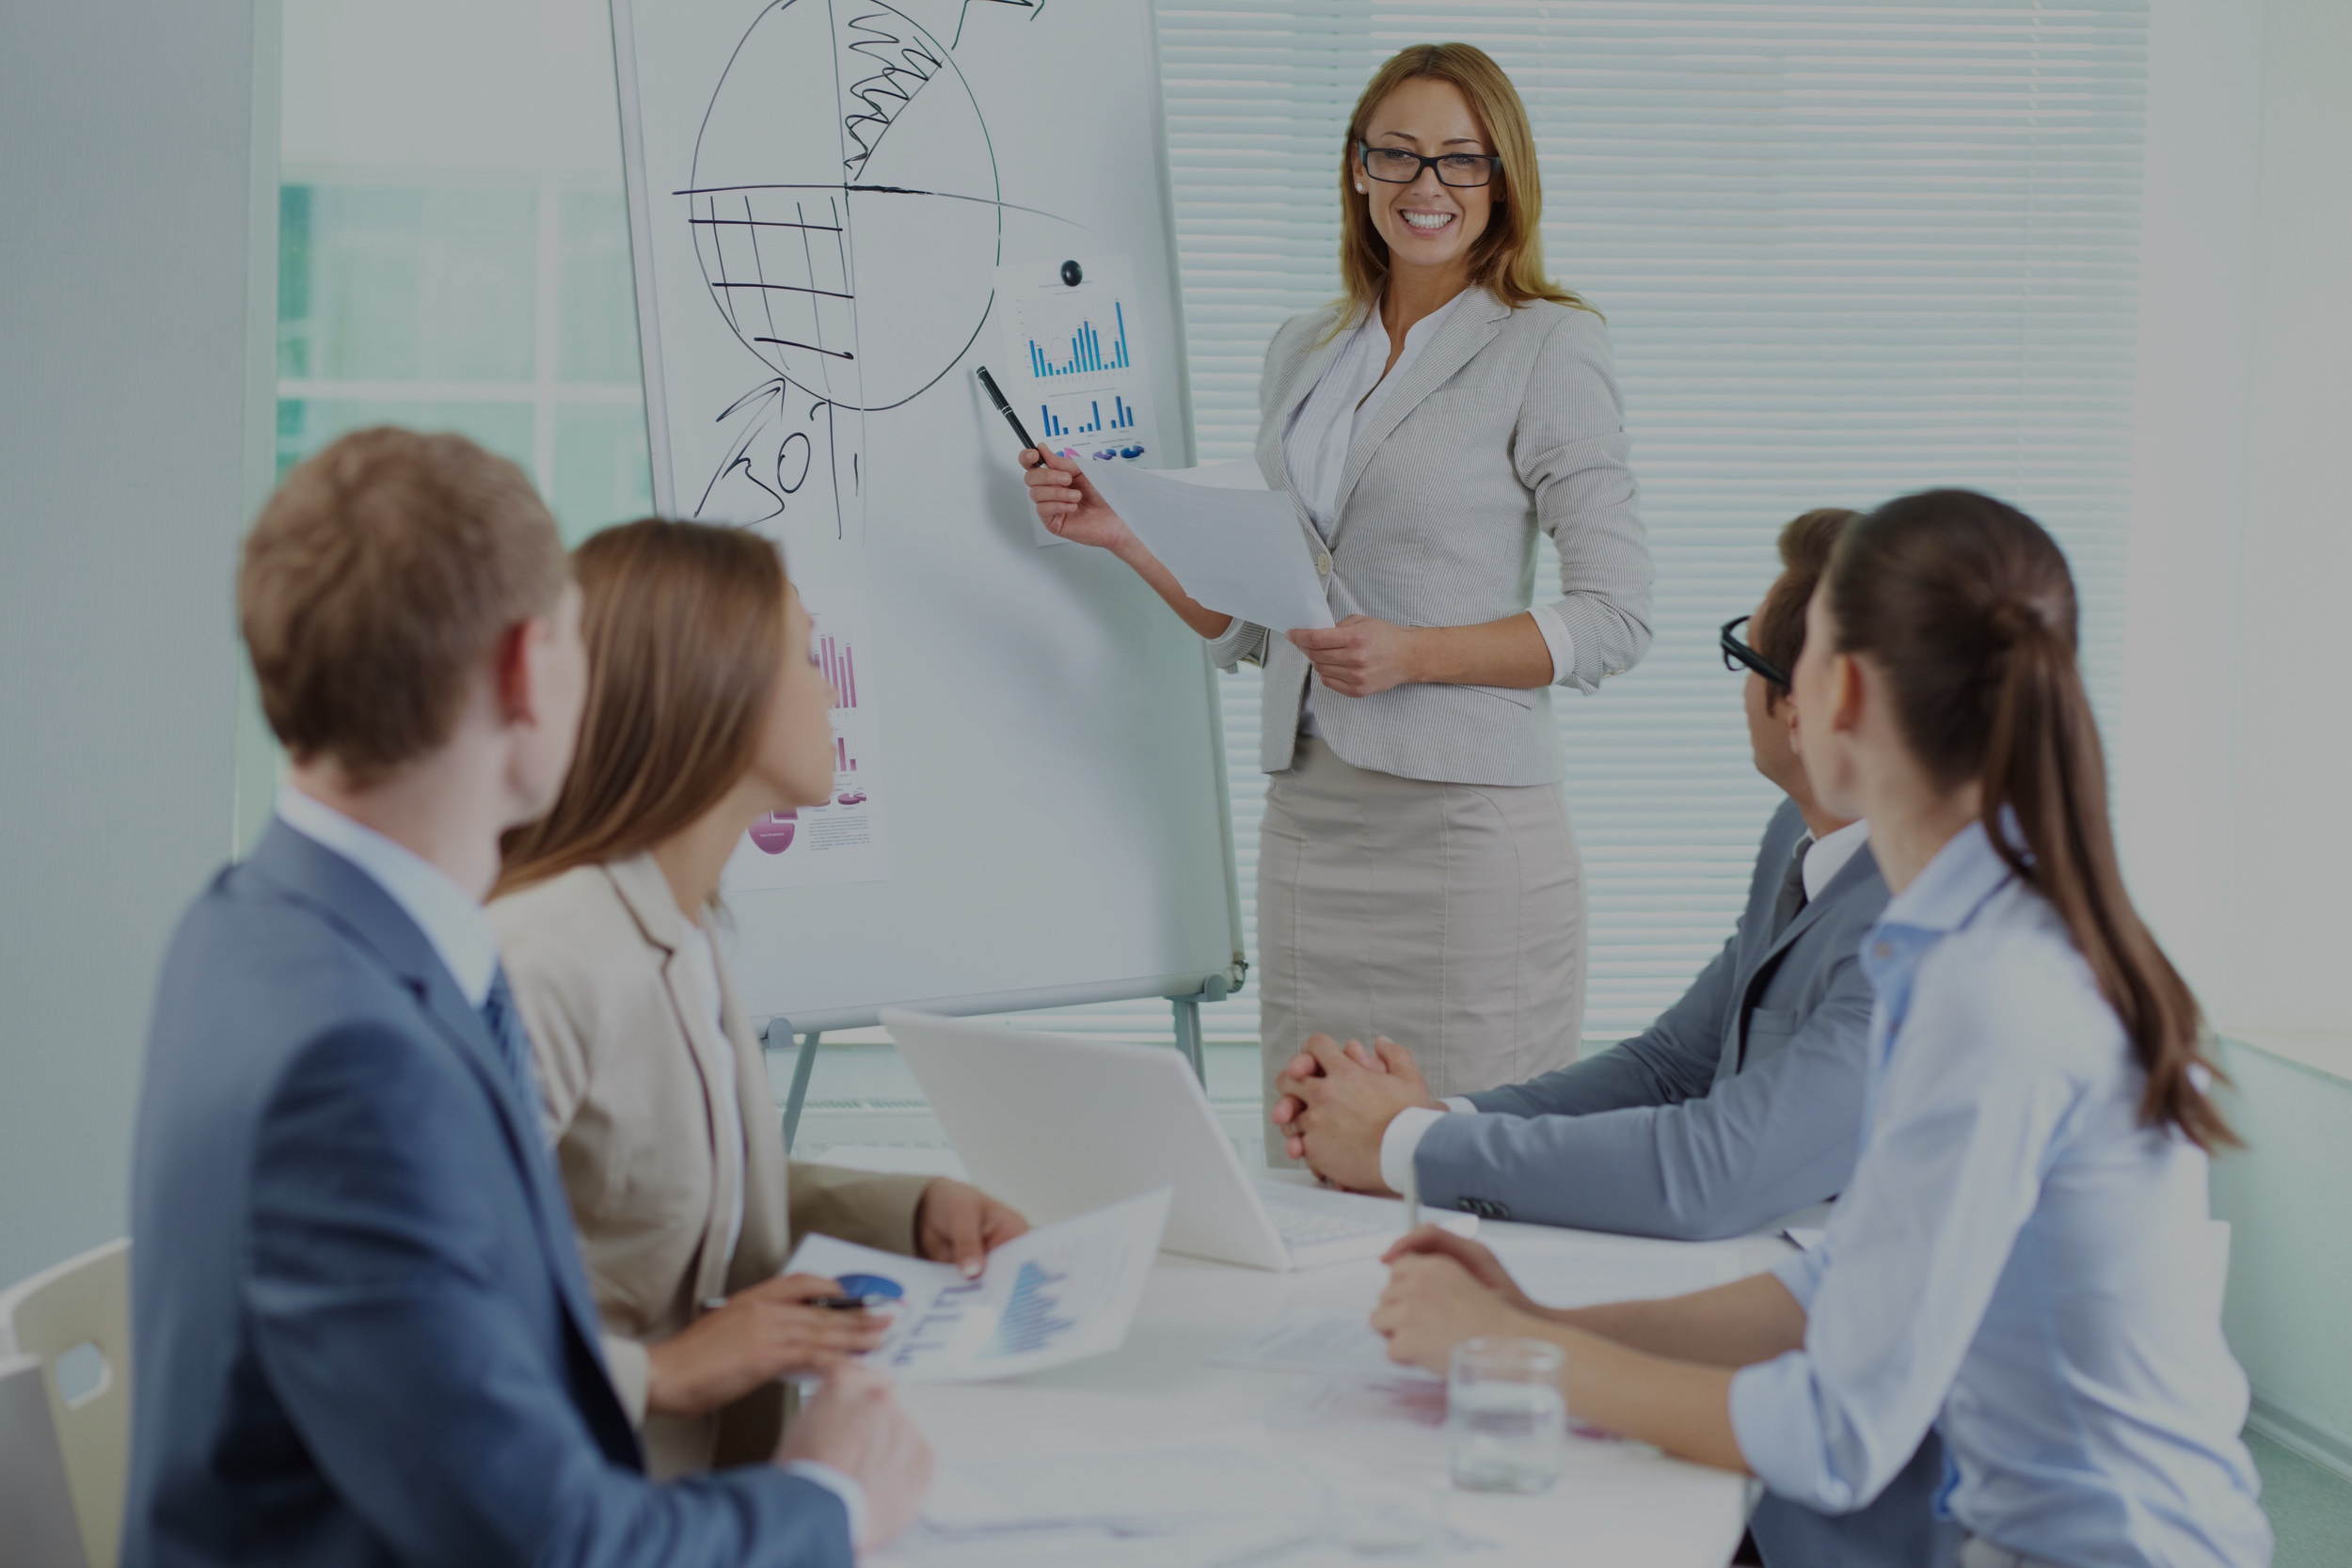 Training - Hands-on training facilitated in small groups by Business As Usual's certified world-class trainers.